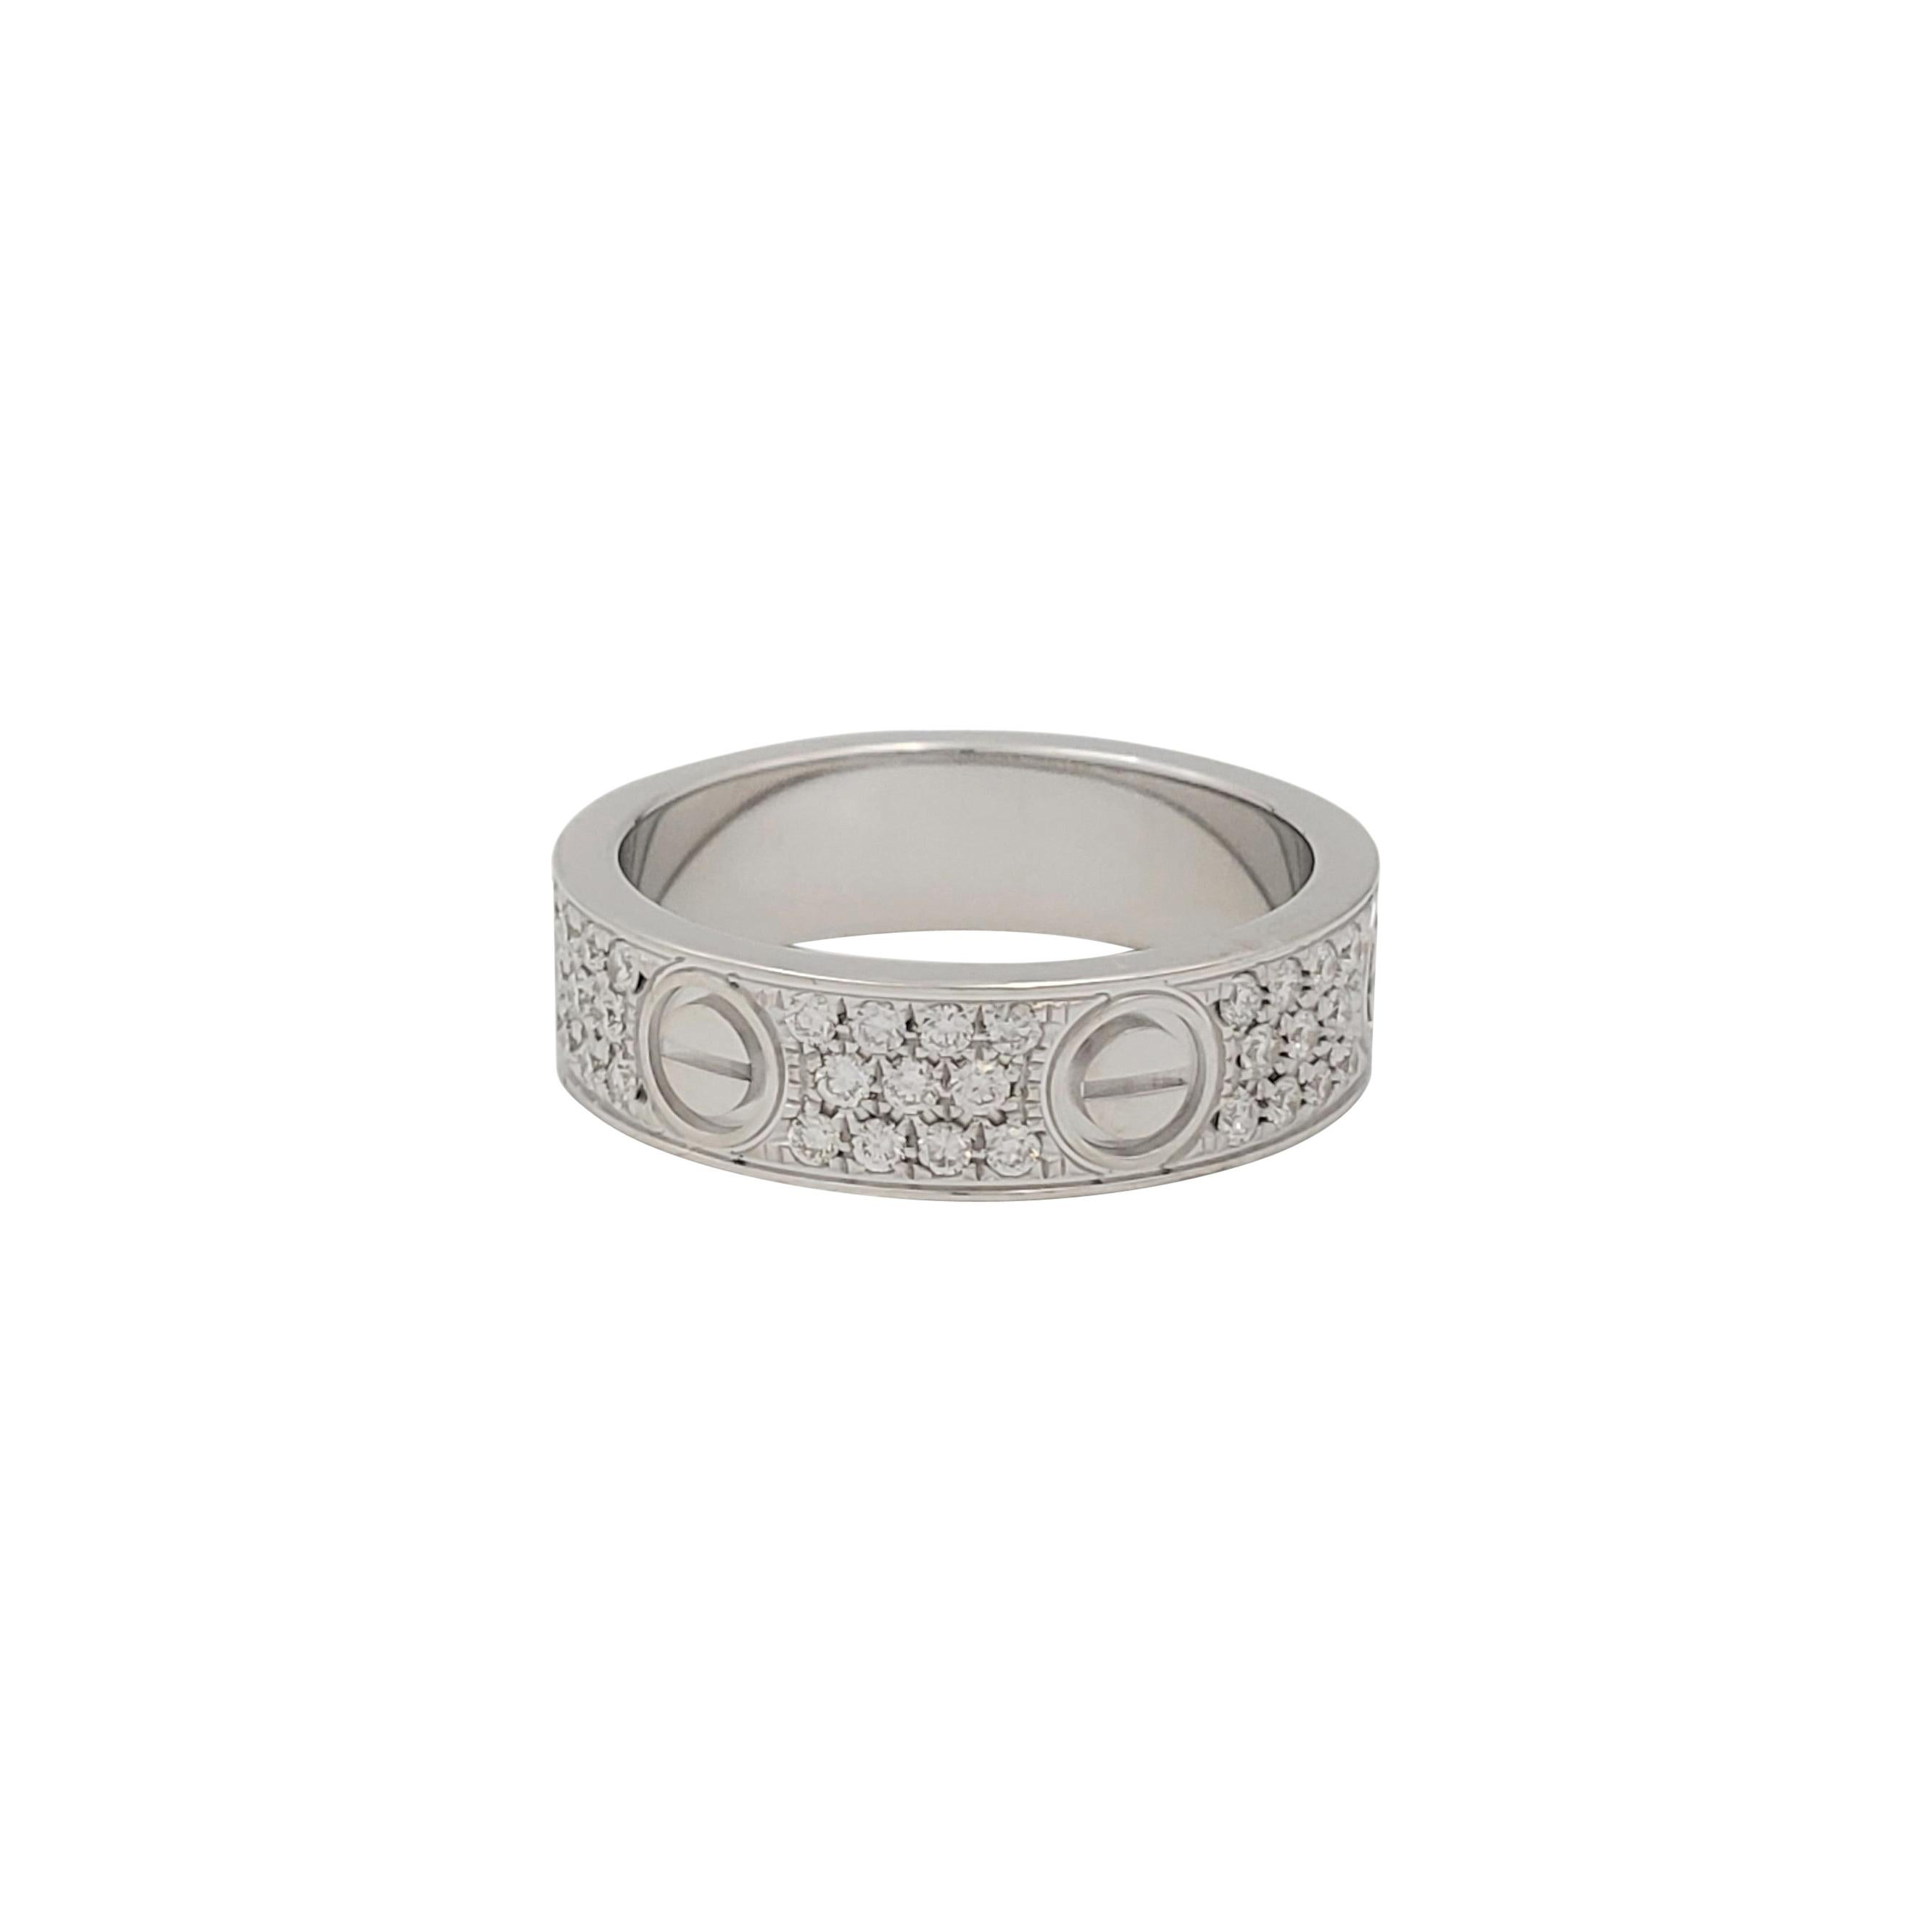 Cartier 'Love' White Gold and Diamond Pave Ring